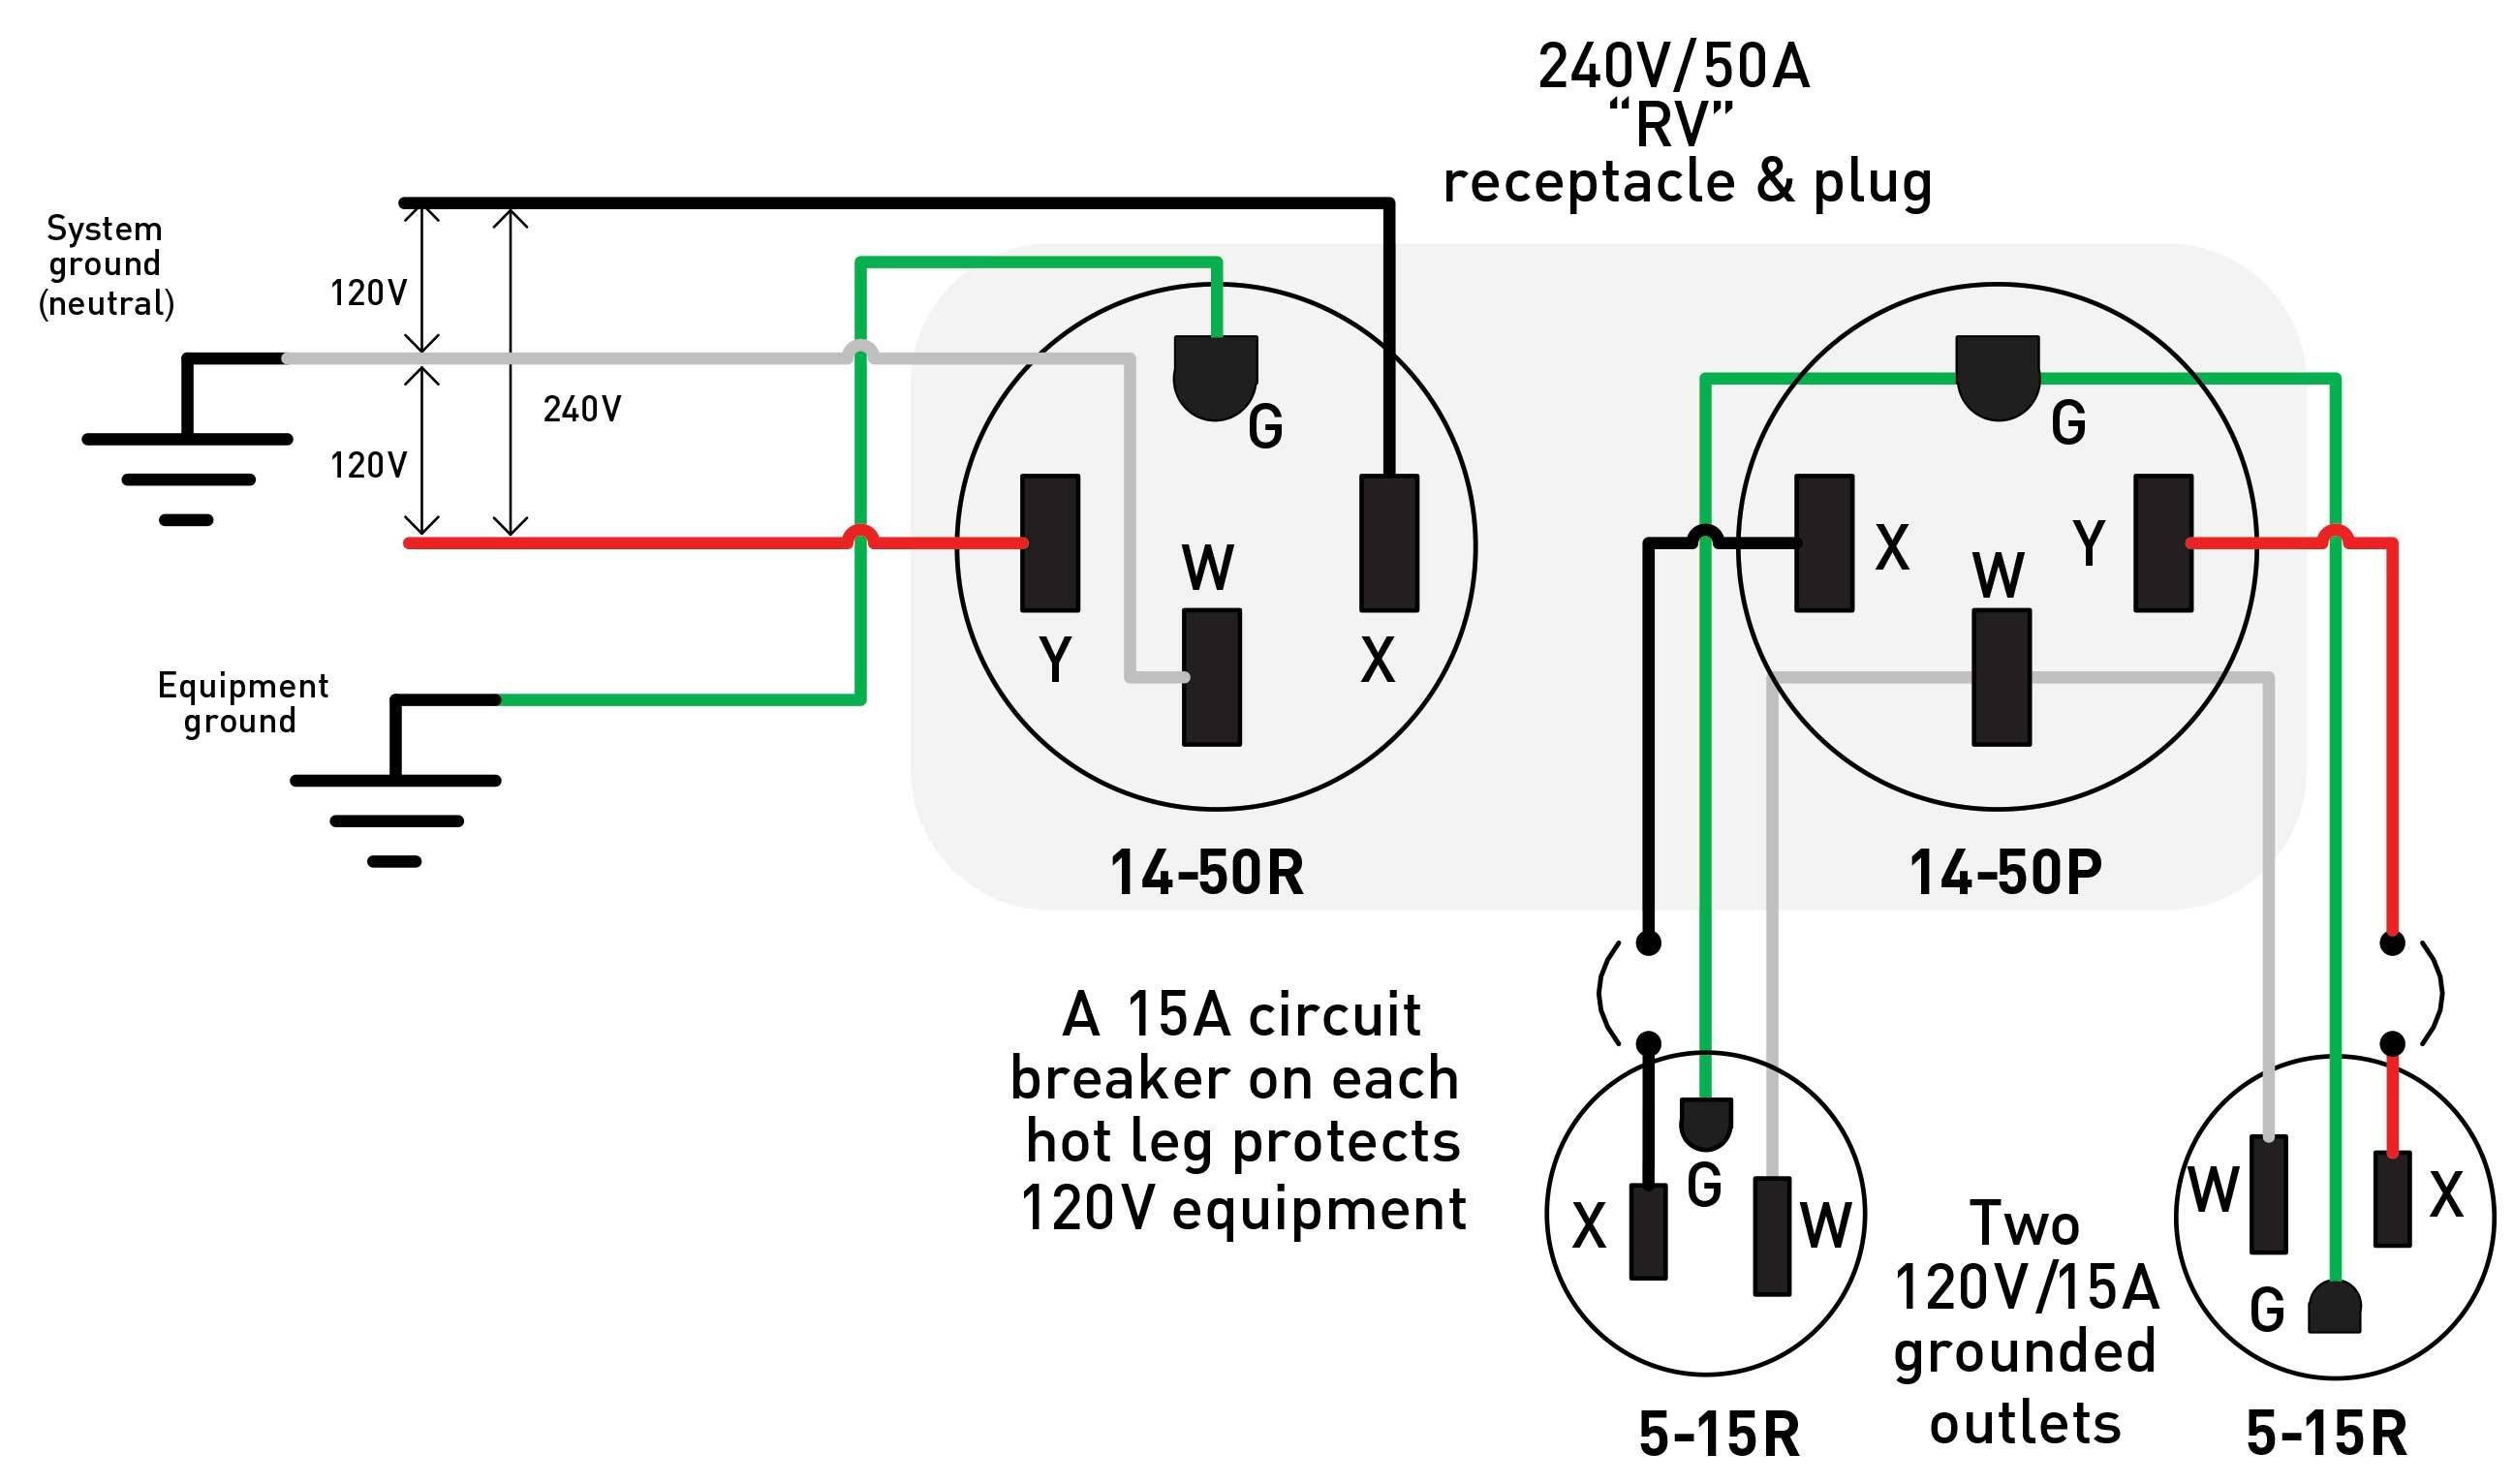 3 Wire For 220v Welder Wiring Diagram - Auto Electrical ... Ibanez Rg Wiring Diagram on